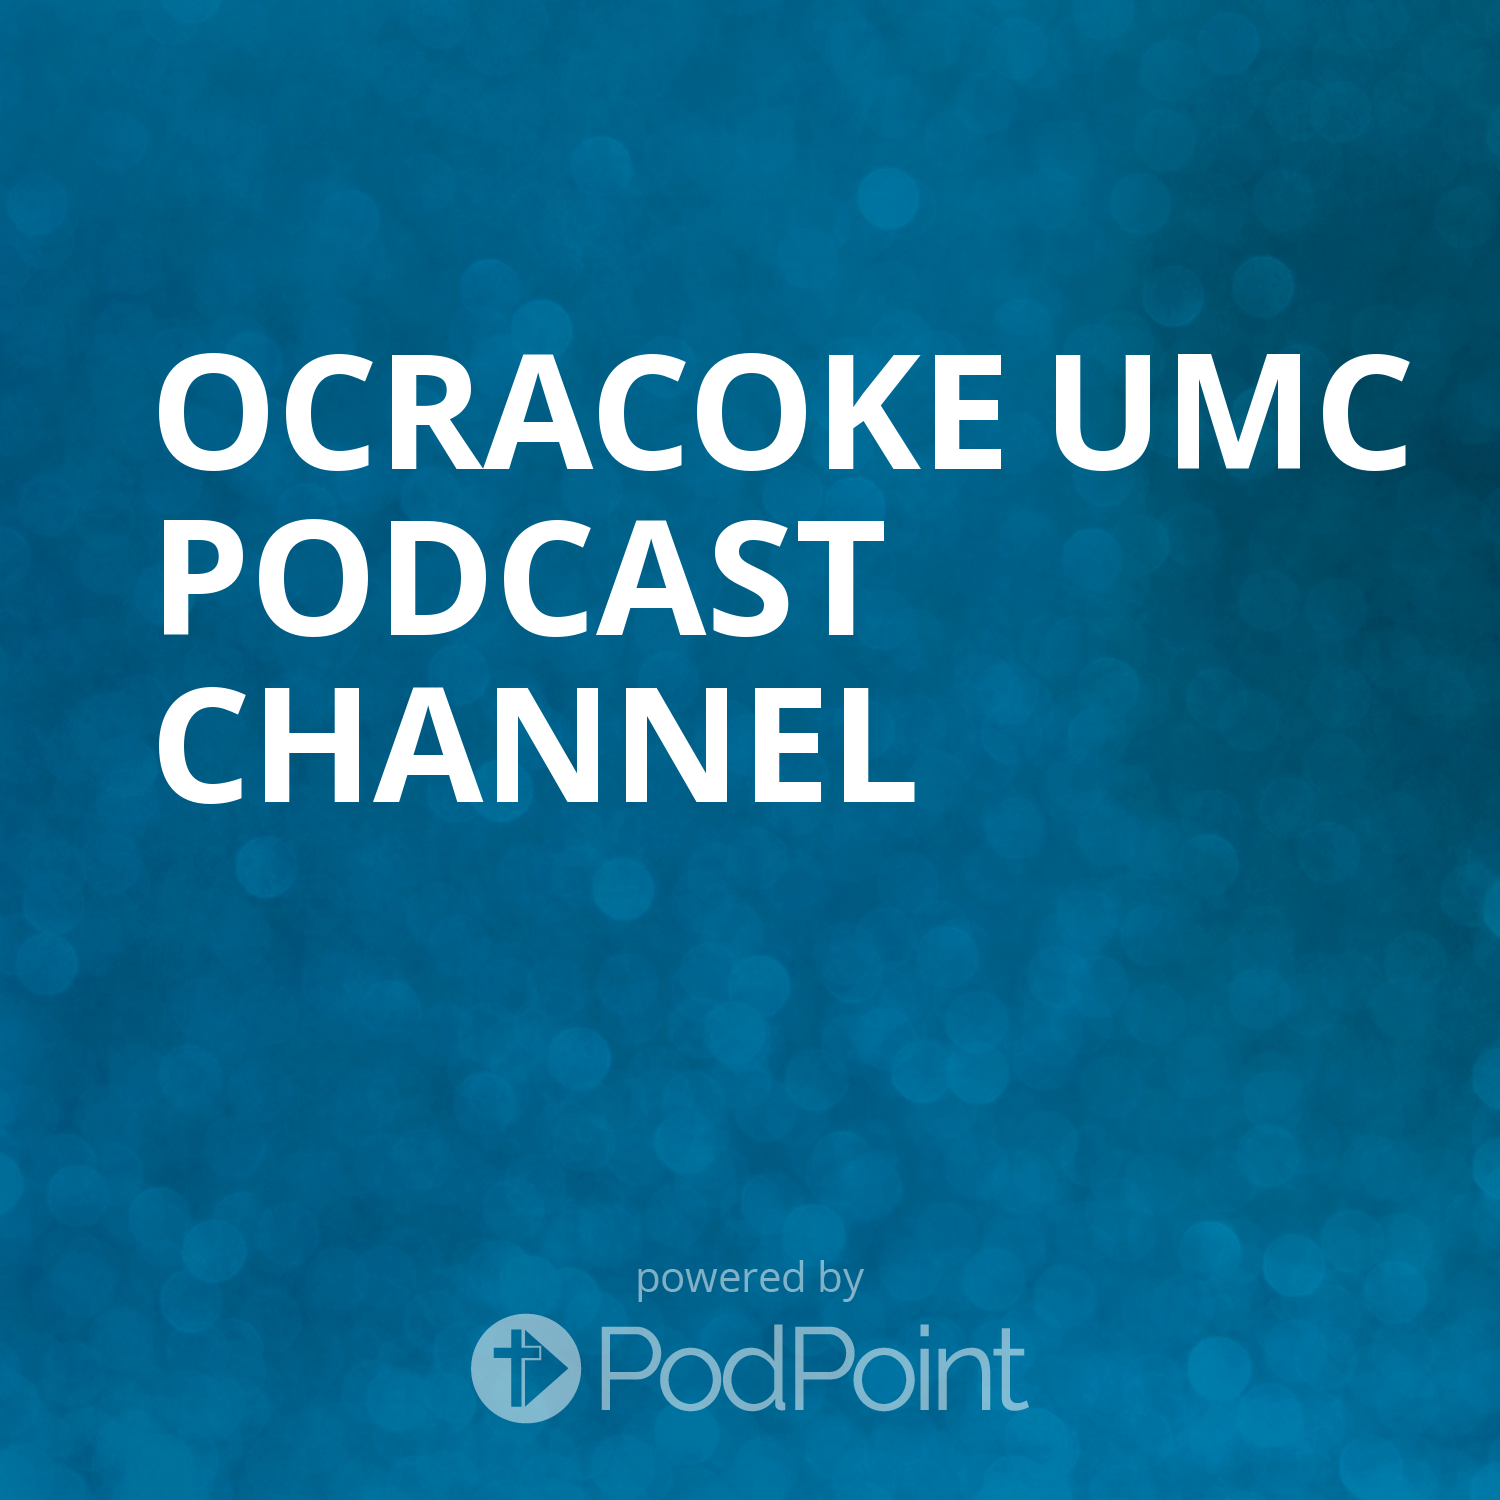 Ocracoke UMC Podcast Channel